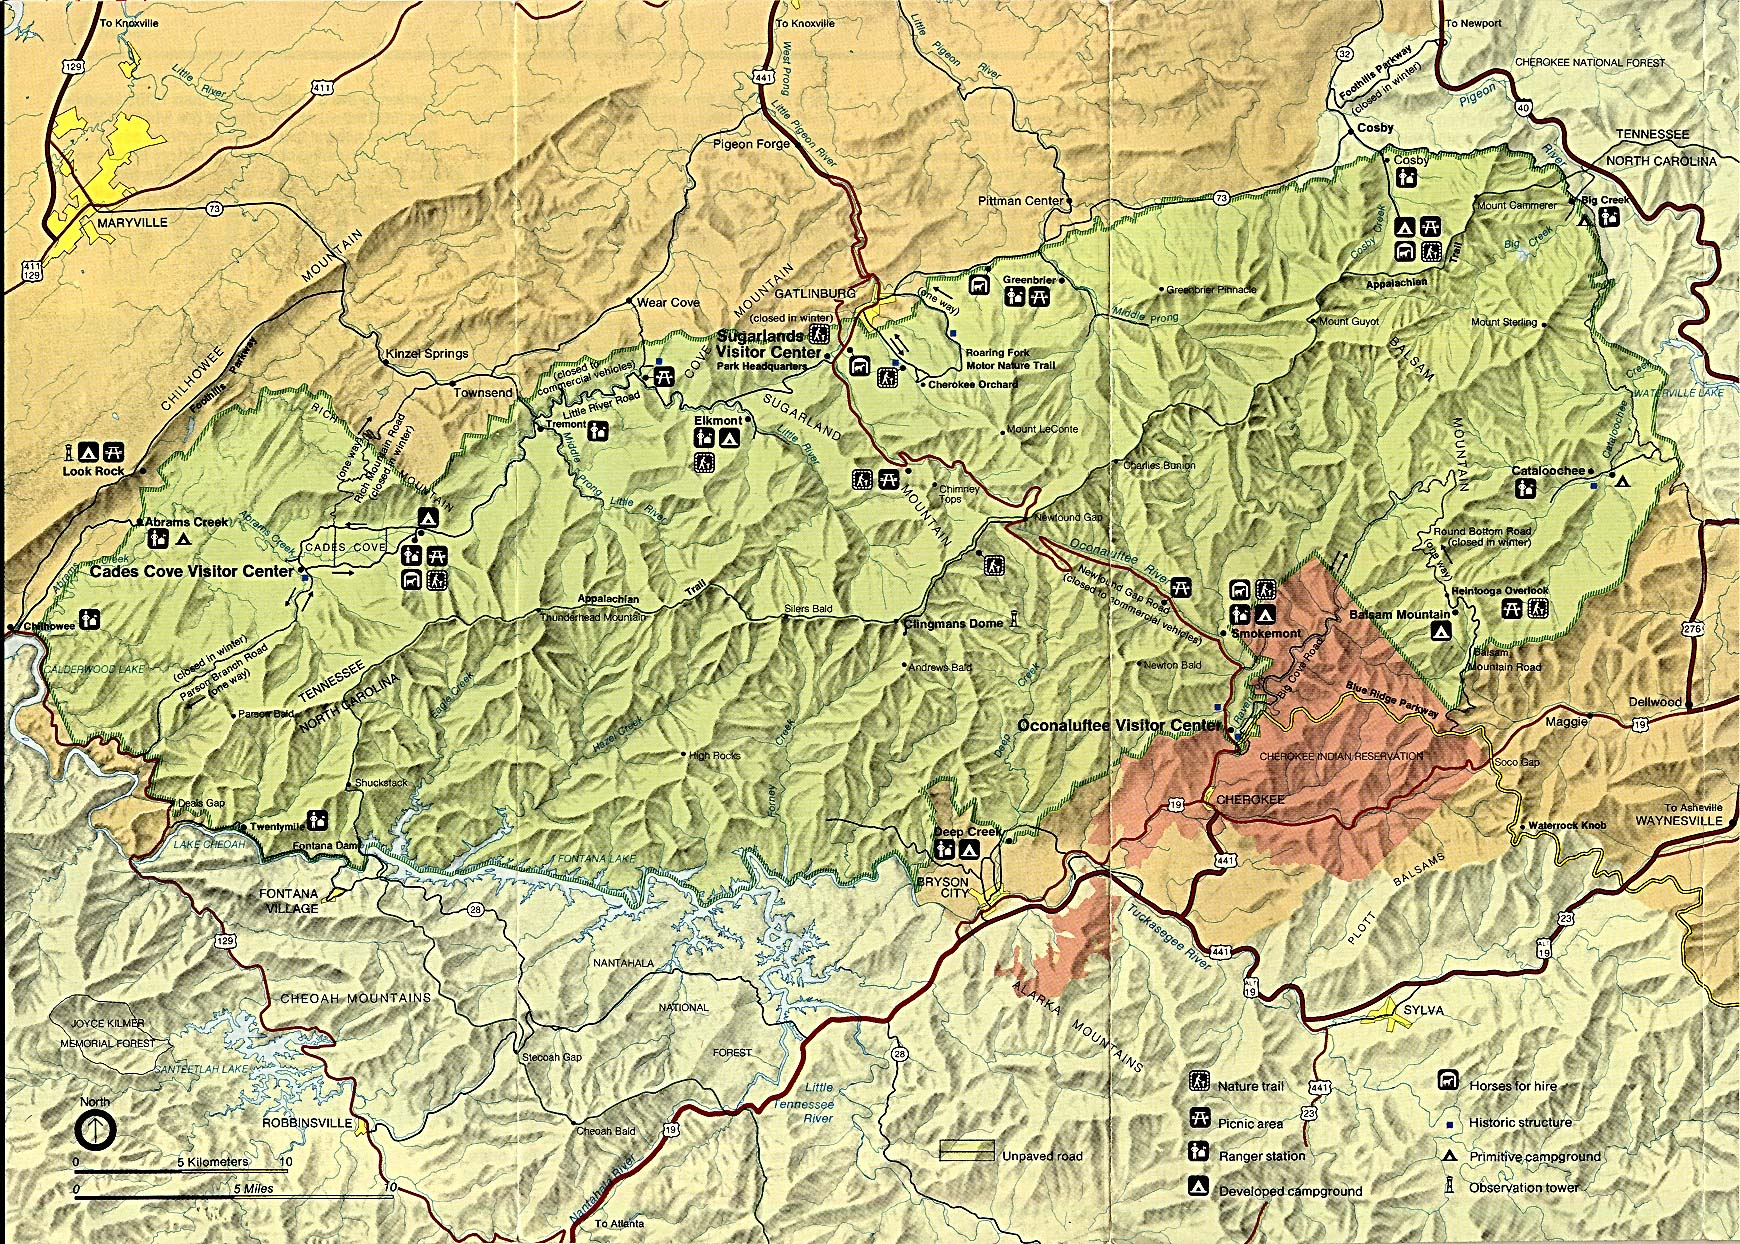 Great Smoky Mountains National Park Shaded Relief Map, Tennessee, United States